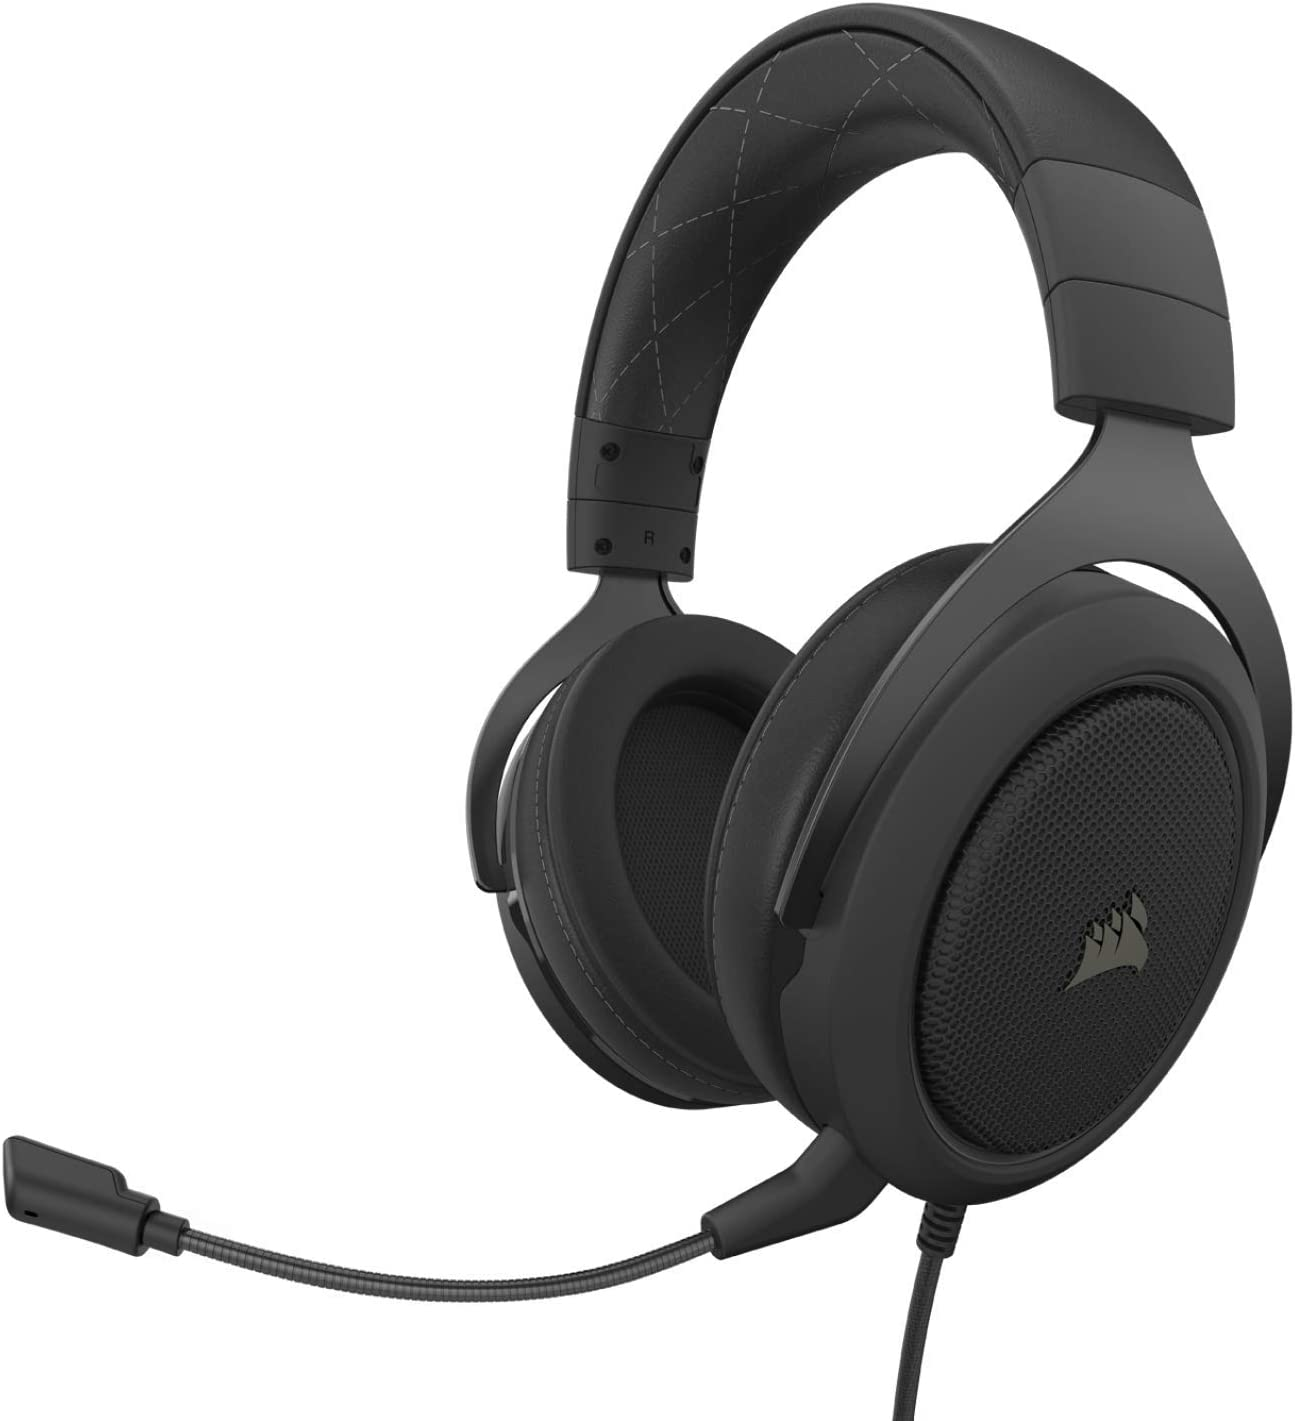 Corsair HS60 PRO - 7.1 Virtual Surround Sound Gaming Headset with USB DAC - Works with PC, Xbox Series X, Xbox Series S, Xbox One, PS5, PS4, and Nintendo Switch - Carbon (CA-9011213-NA): Computers & Accessories